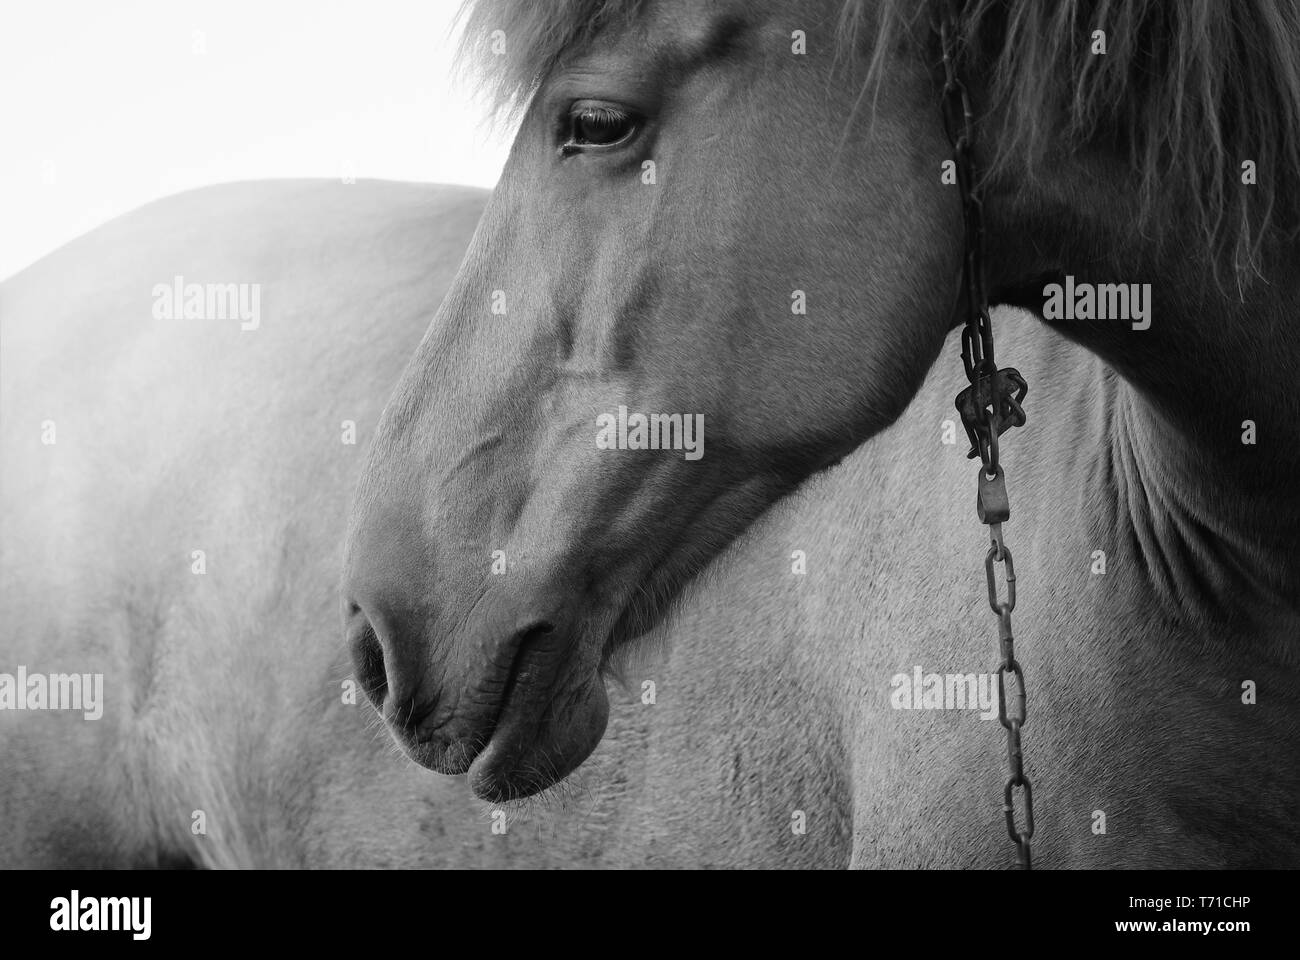 Horse with chain - Stock Image